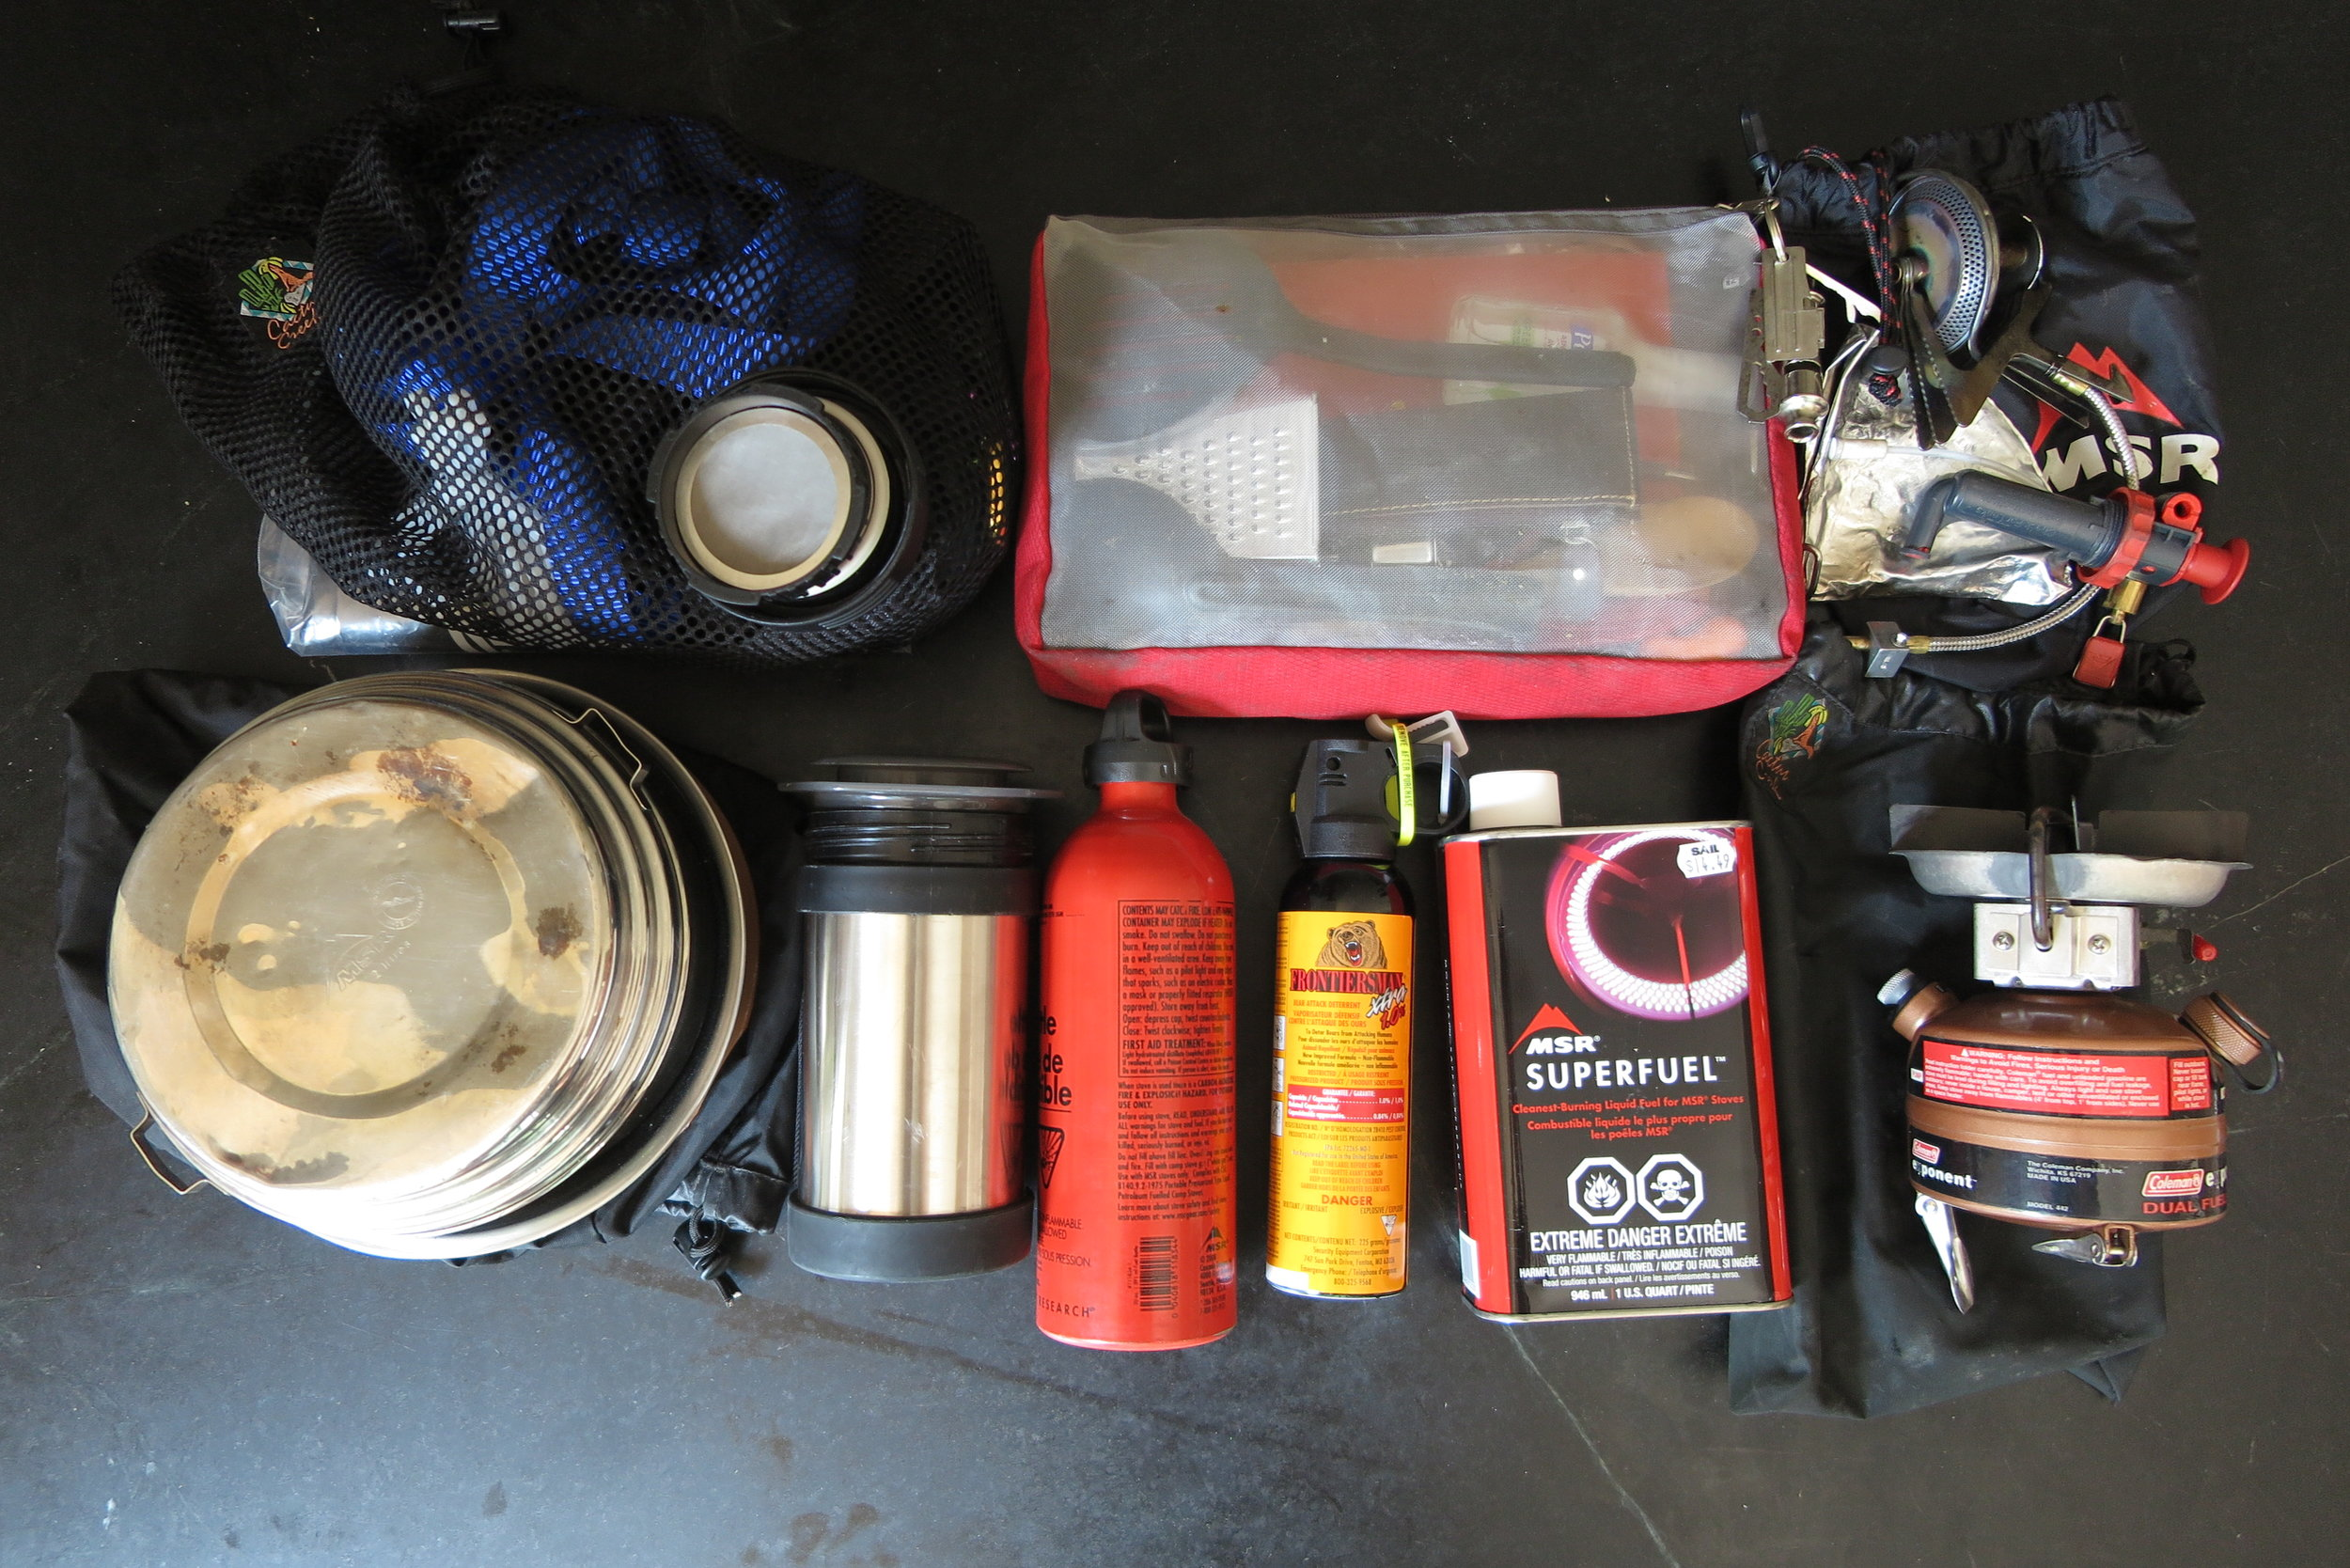 Right Pannier - Fuel can and bottle, coleman and whisperlite stove, kitchen utensils, aeropress coffee maker in mug, bear spray, potset, fry pan, bowl and small mesh bag of ropes, straps, zipties, etc.